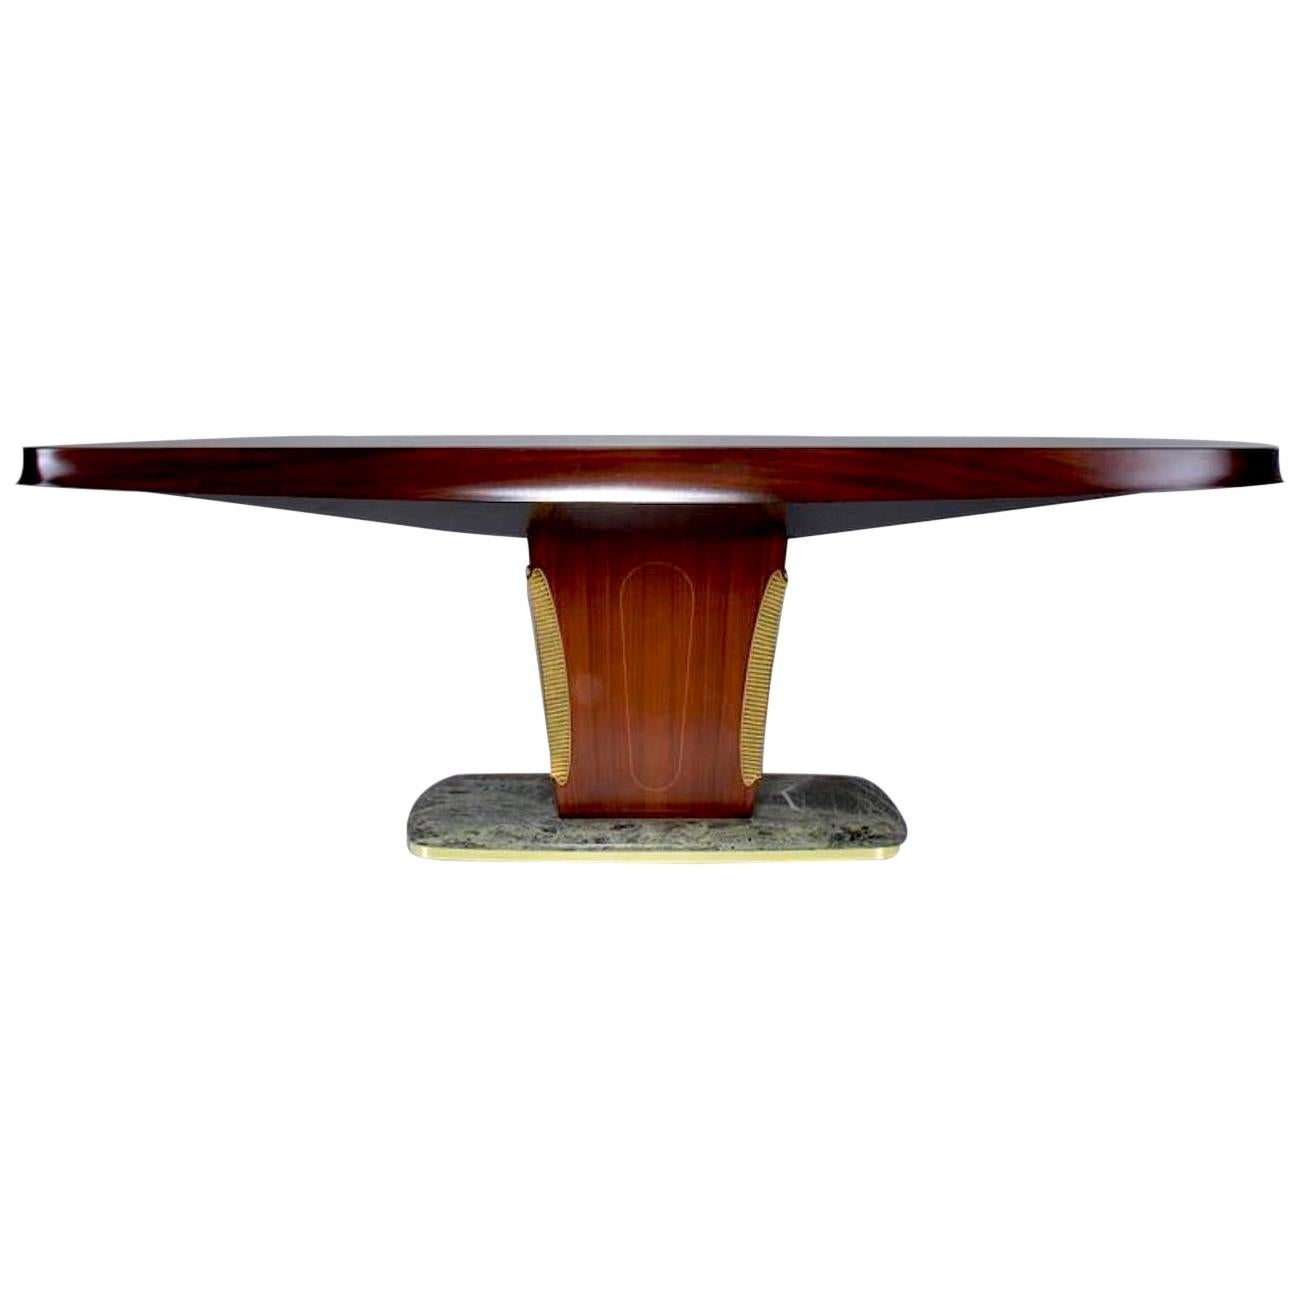 Vittorio Dassi Iconic Design Midcentury Dining Table, 1950s